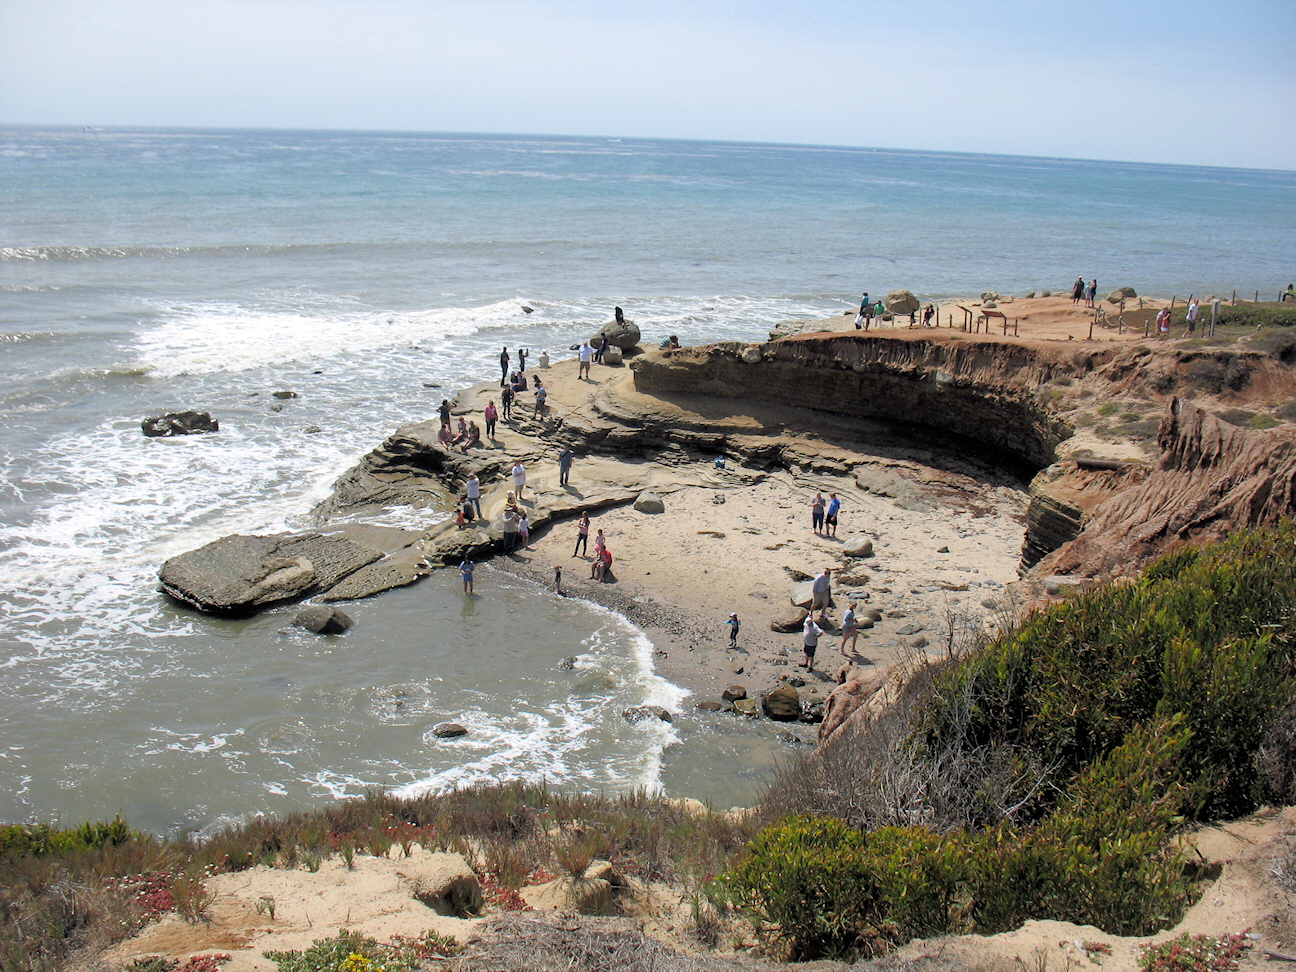 San diego fair tickets costco june 2012 fort rosecrans battery once a month the historic fort rosecrans battery is open to the public this is a 1943 military look out bunker hidden in the nvjuhfo Choice Image